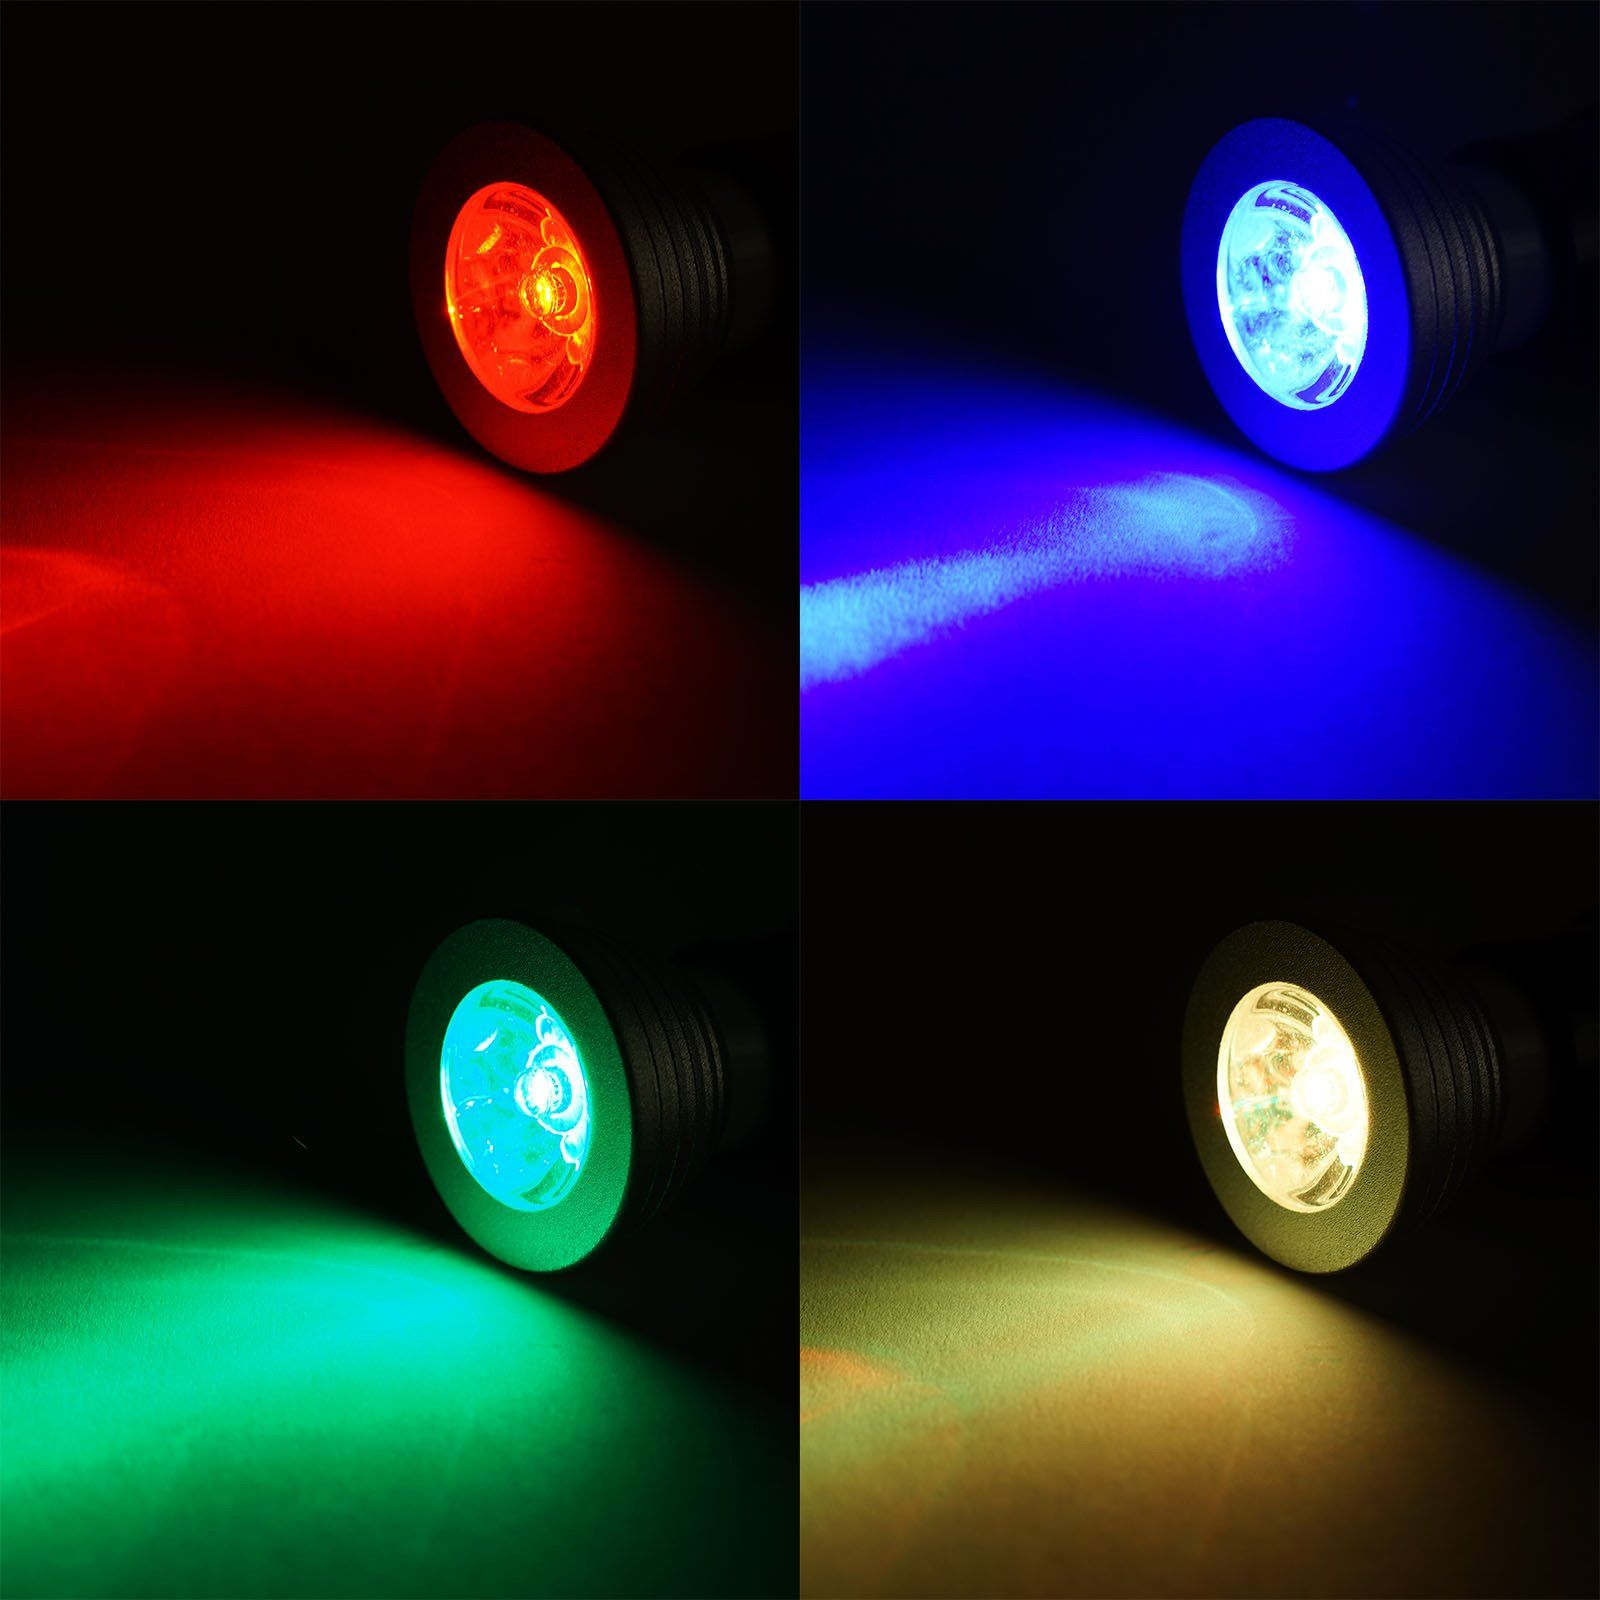 3 Watt 16 Color Changing Led Spot Light With Remote In 2020 Led Color Changing Lights Led Spotlight Color Changing Led